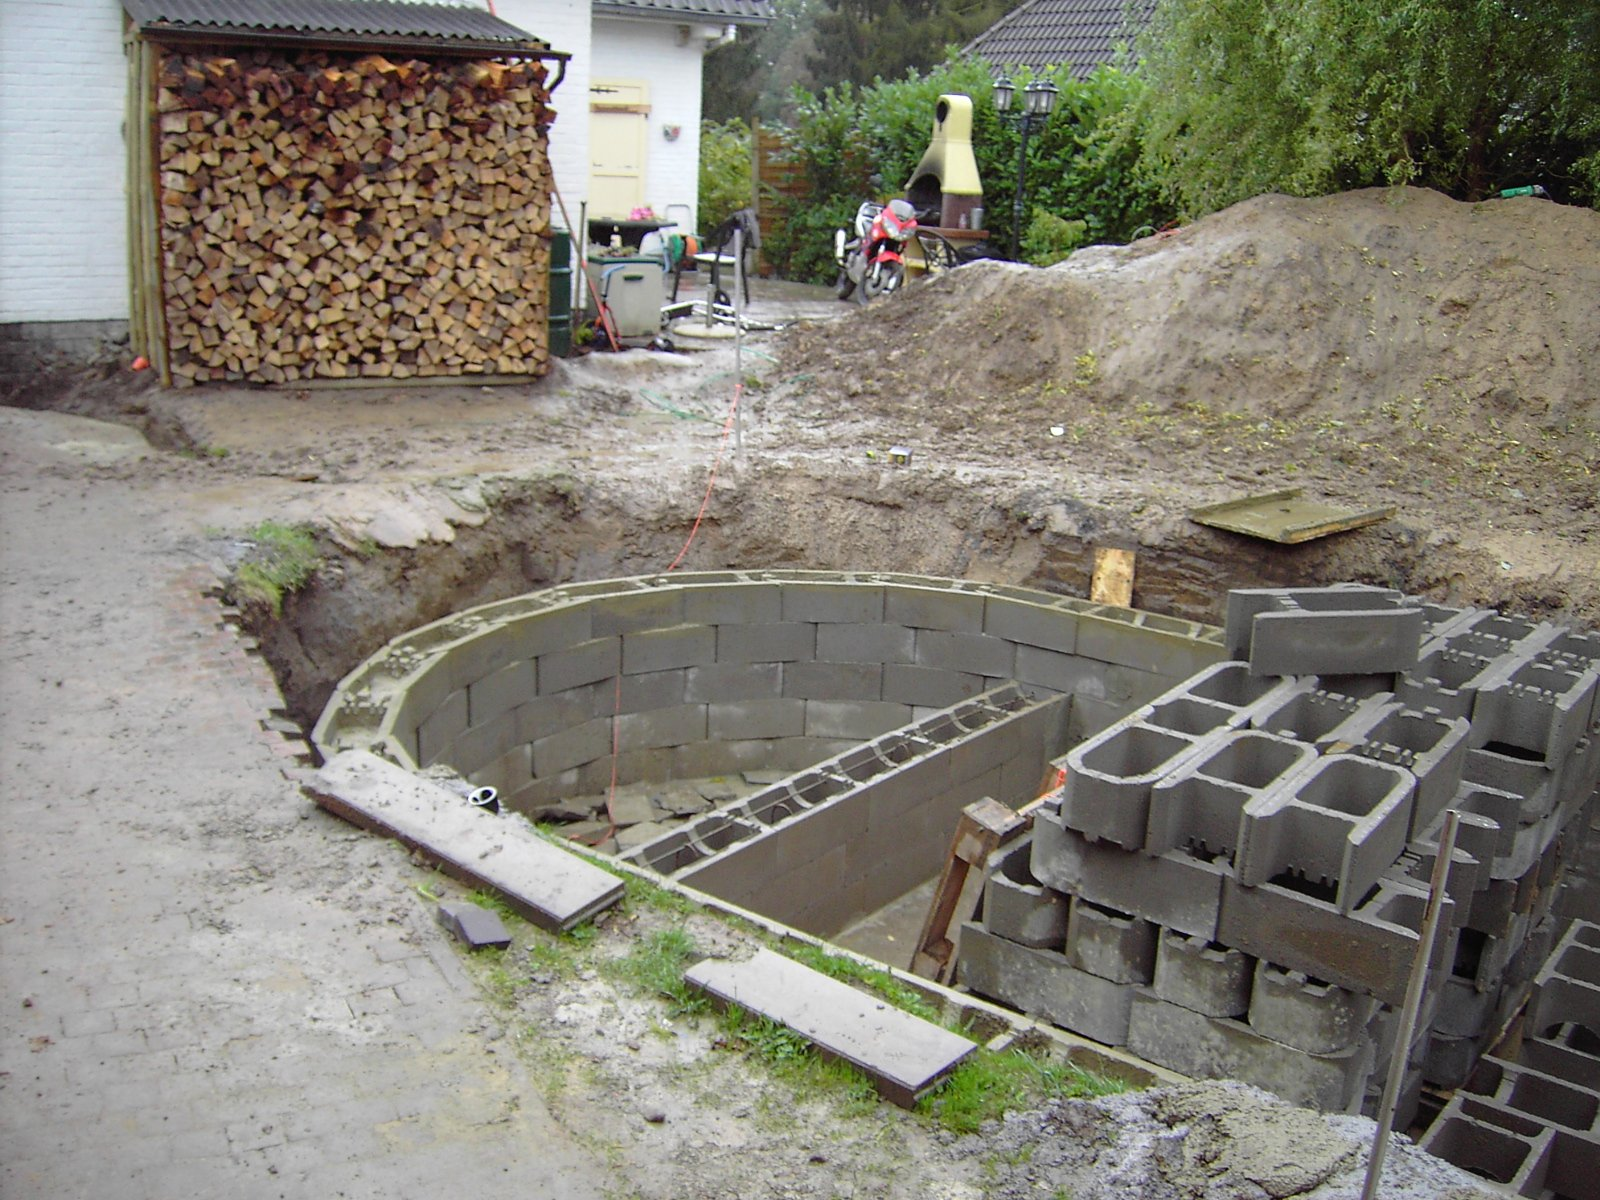 Piscine 20eme Of 09 Le Coulage Des Premiers Blocs La Construction De